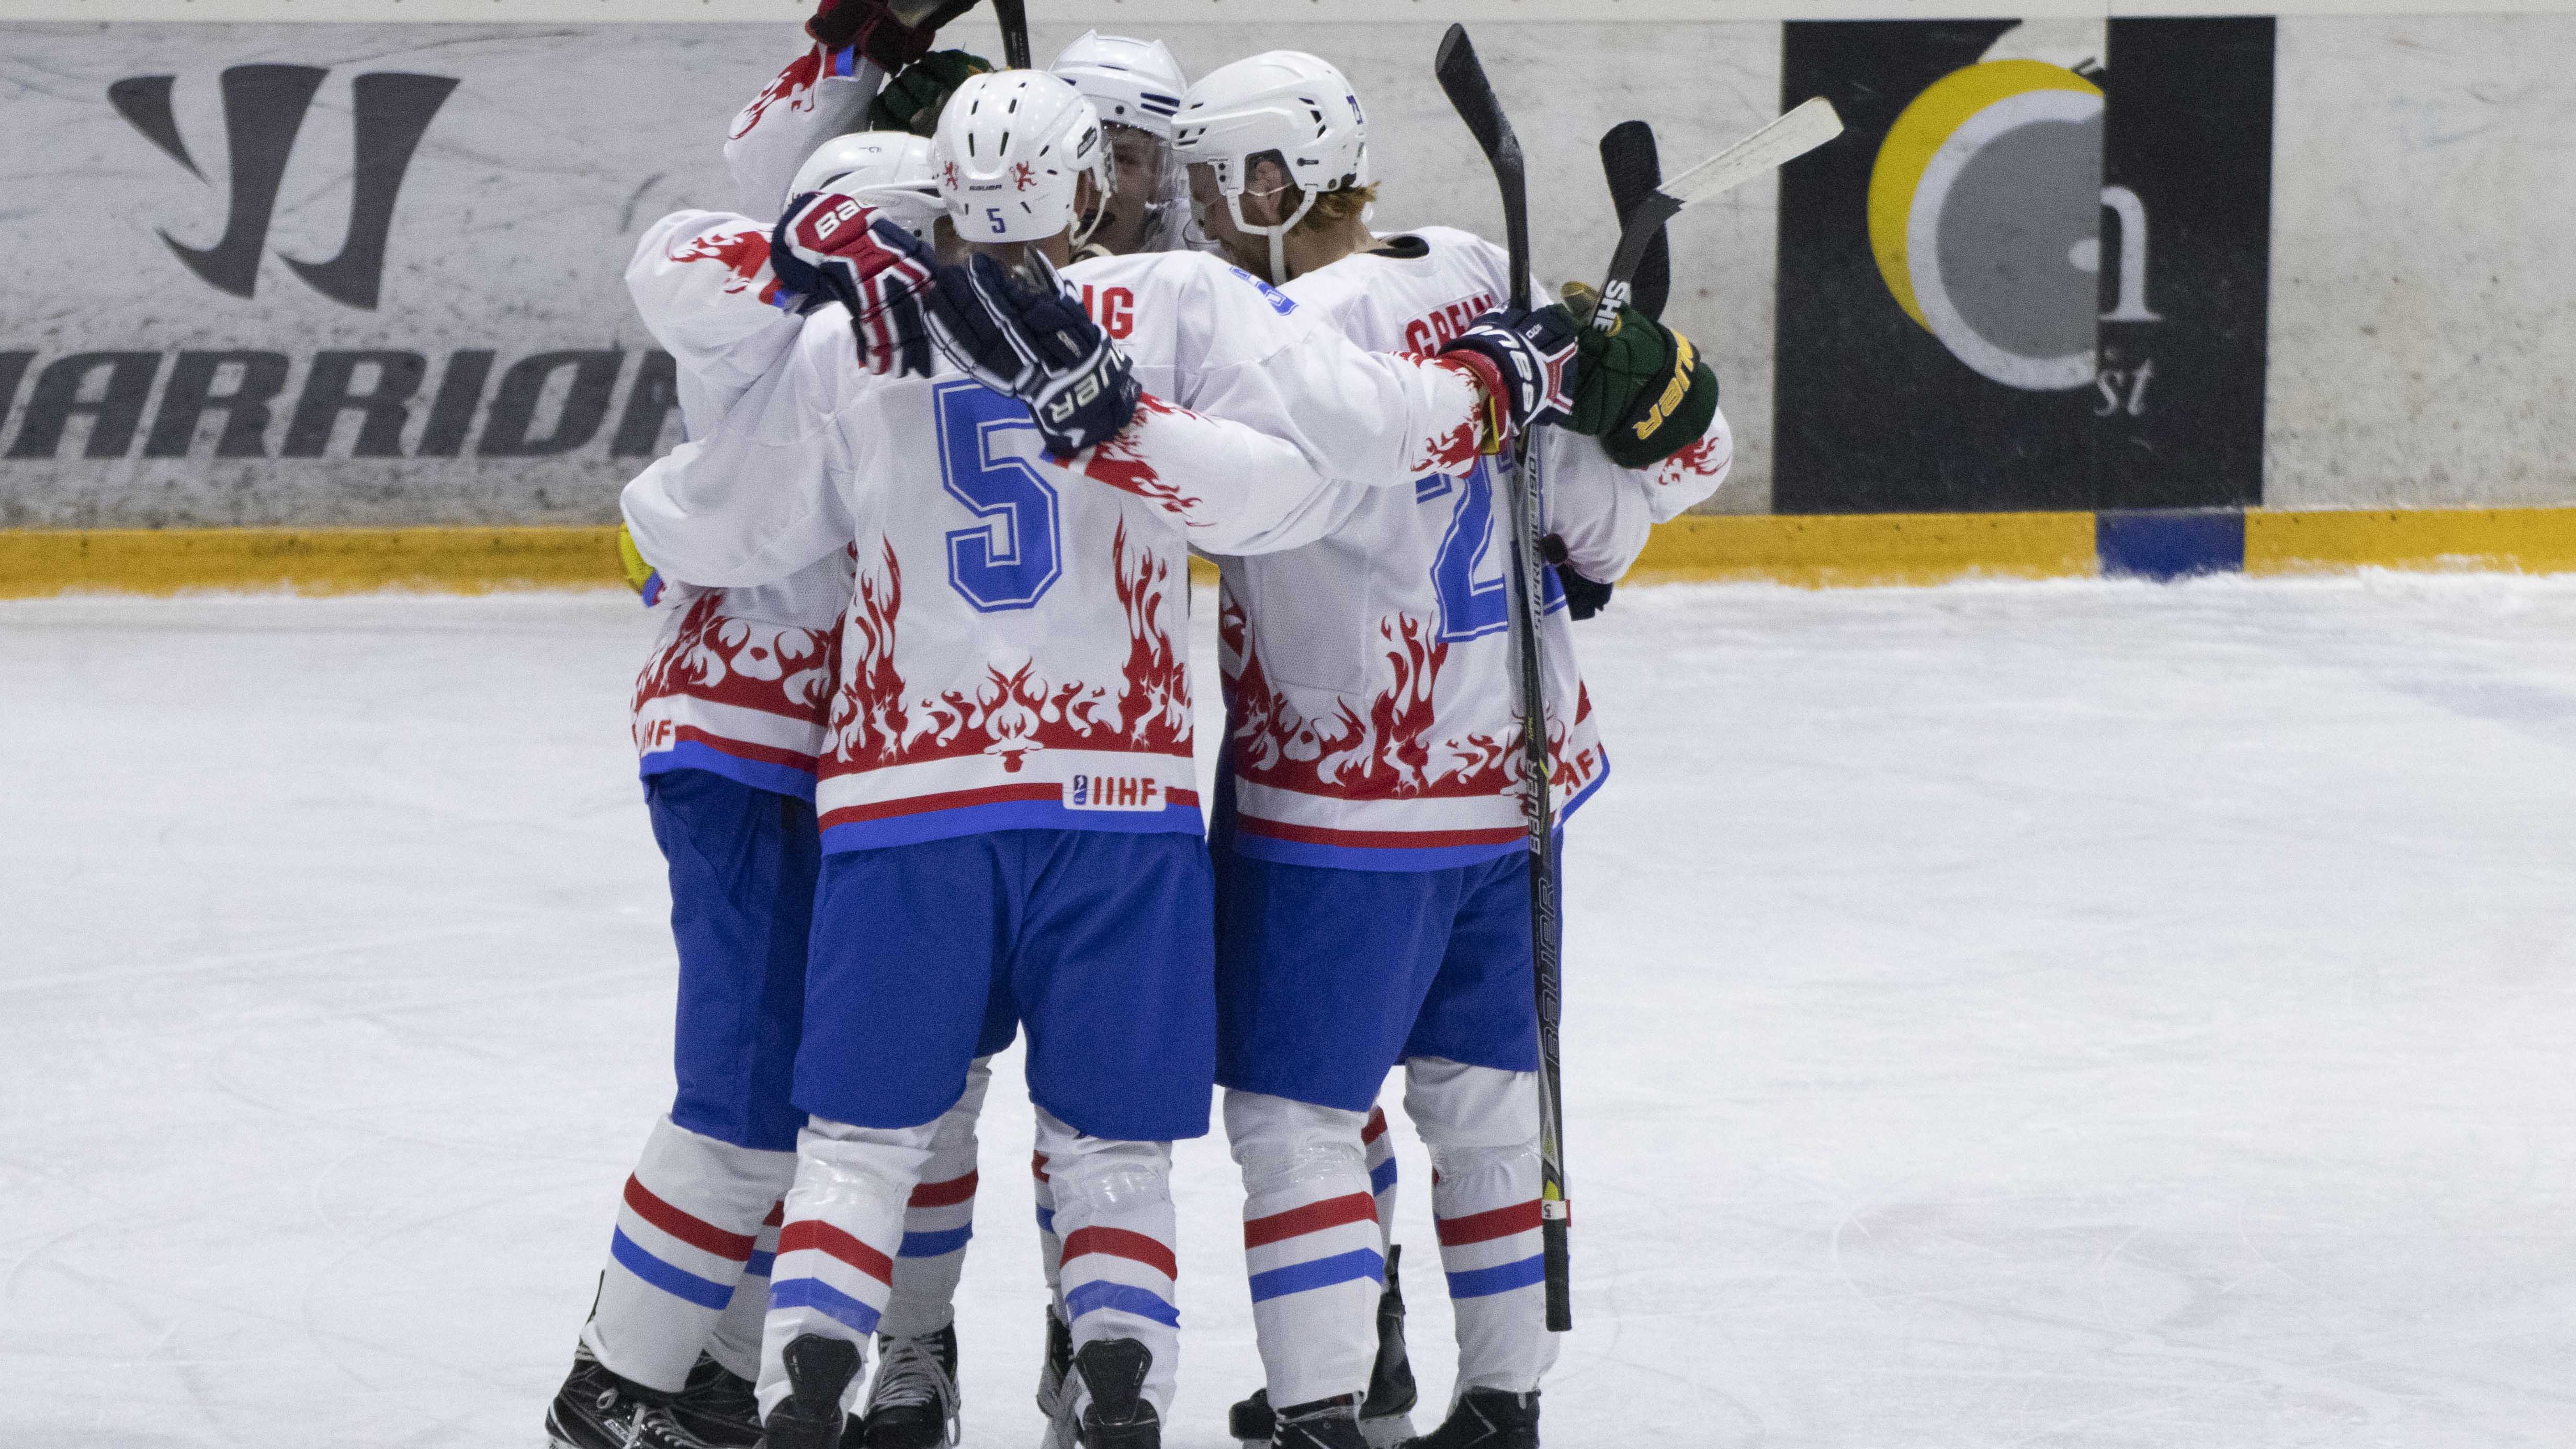 Luxembourg wins world championship opener in 5-goal thriller!